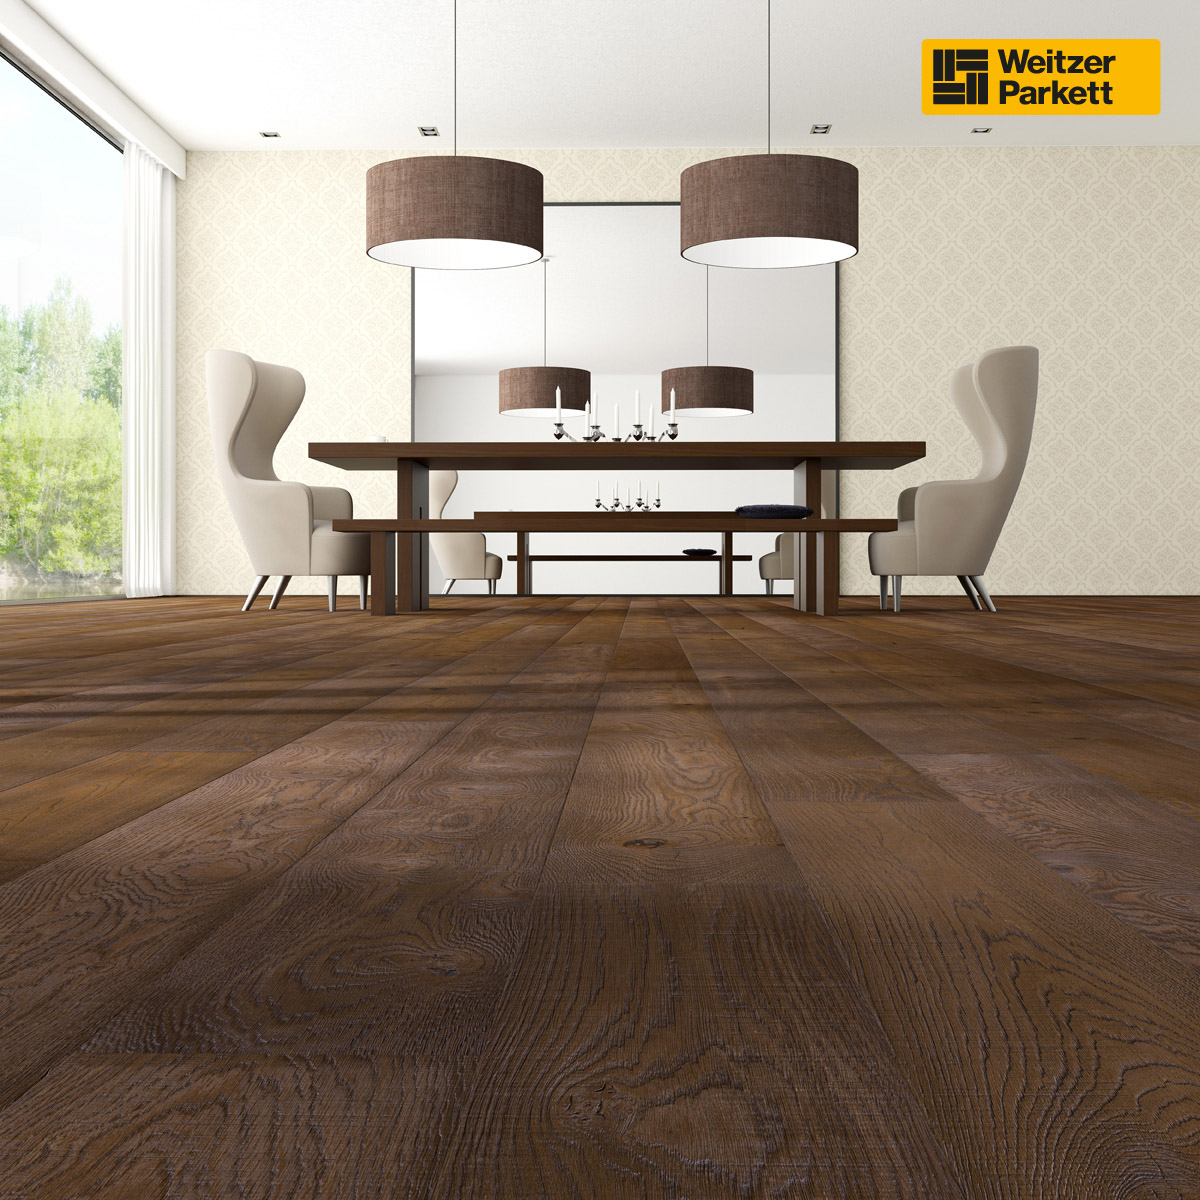 Plank-Appearance_Collection_GD_Charisma-Plank_Oak_Cognac_wild_bevelled_scraped_PVf_49438.jpg